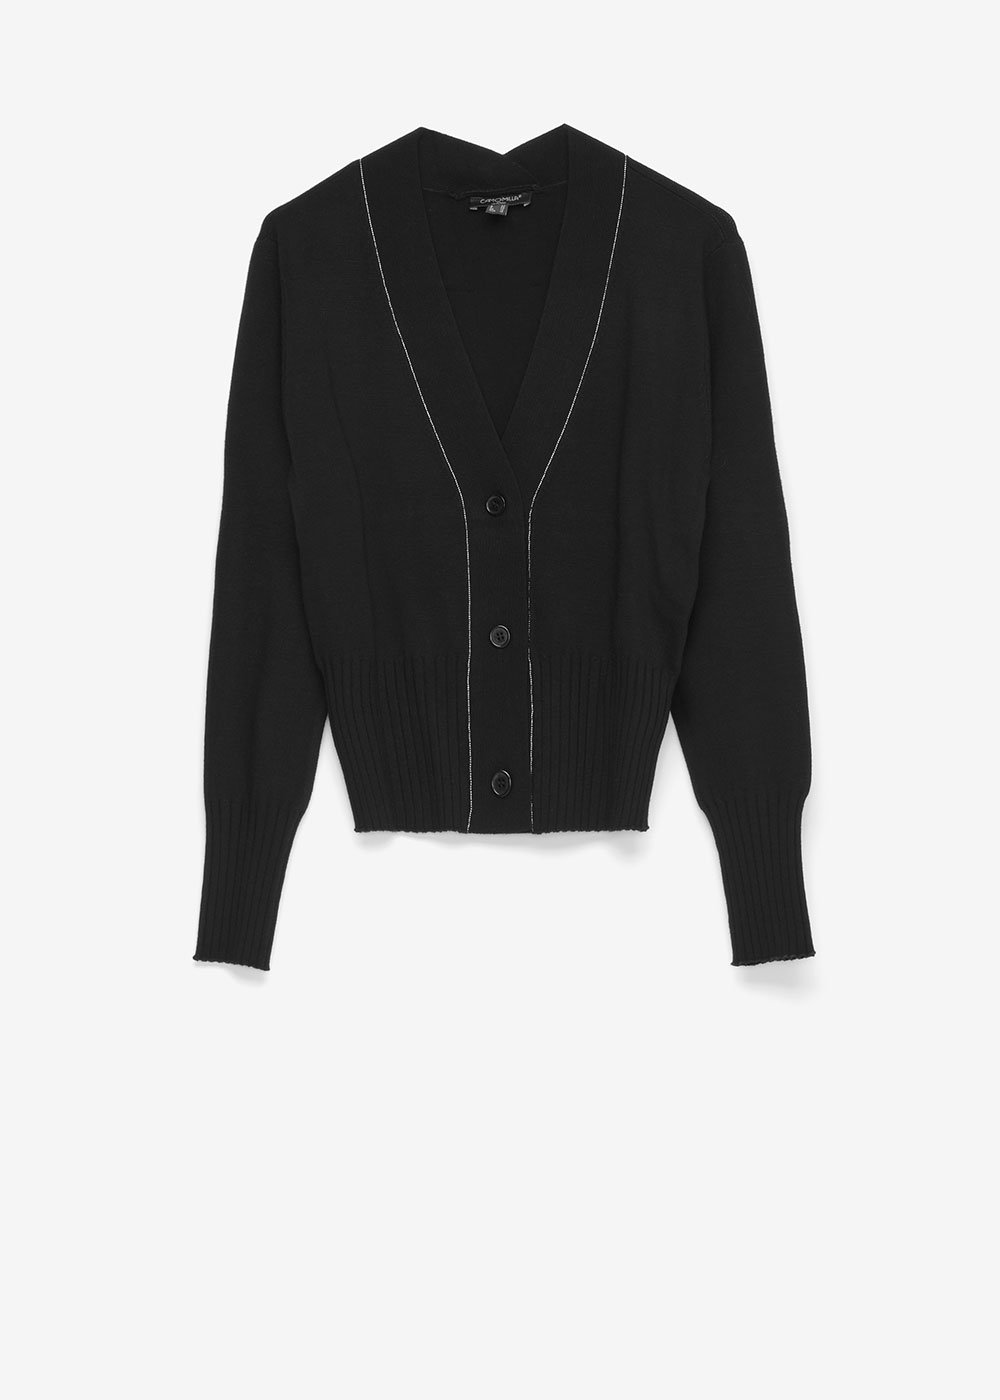 Cryss V-neck cardigan - Black / Silver - Woman